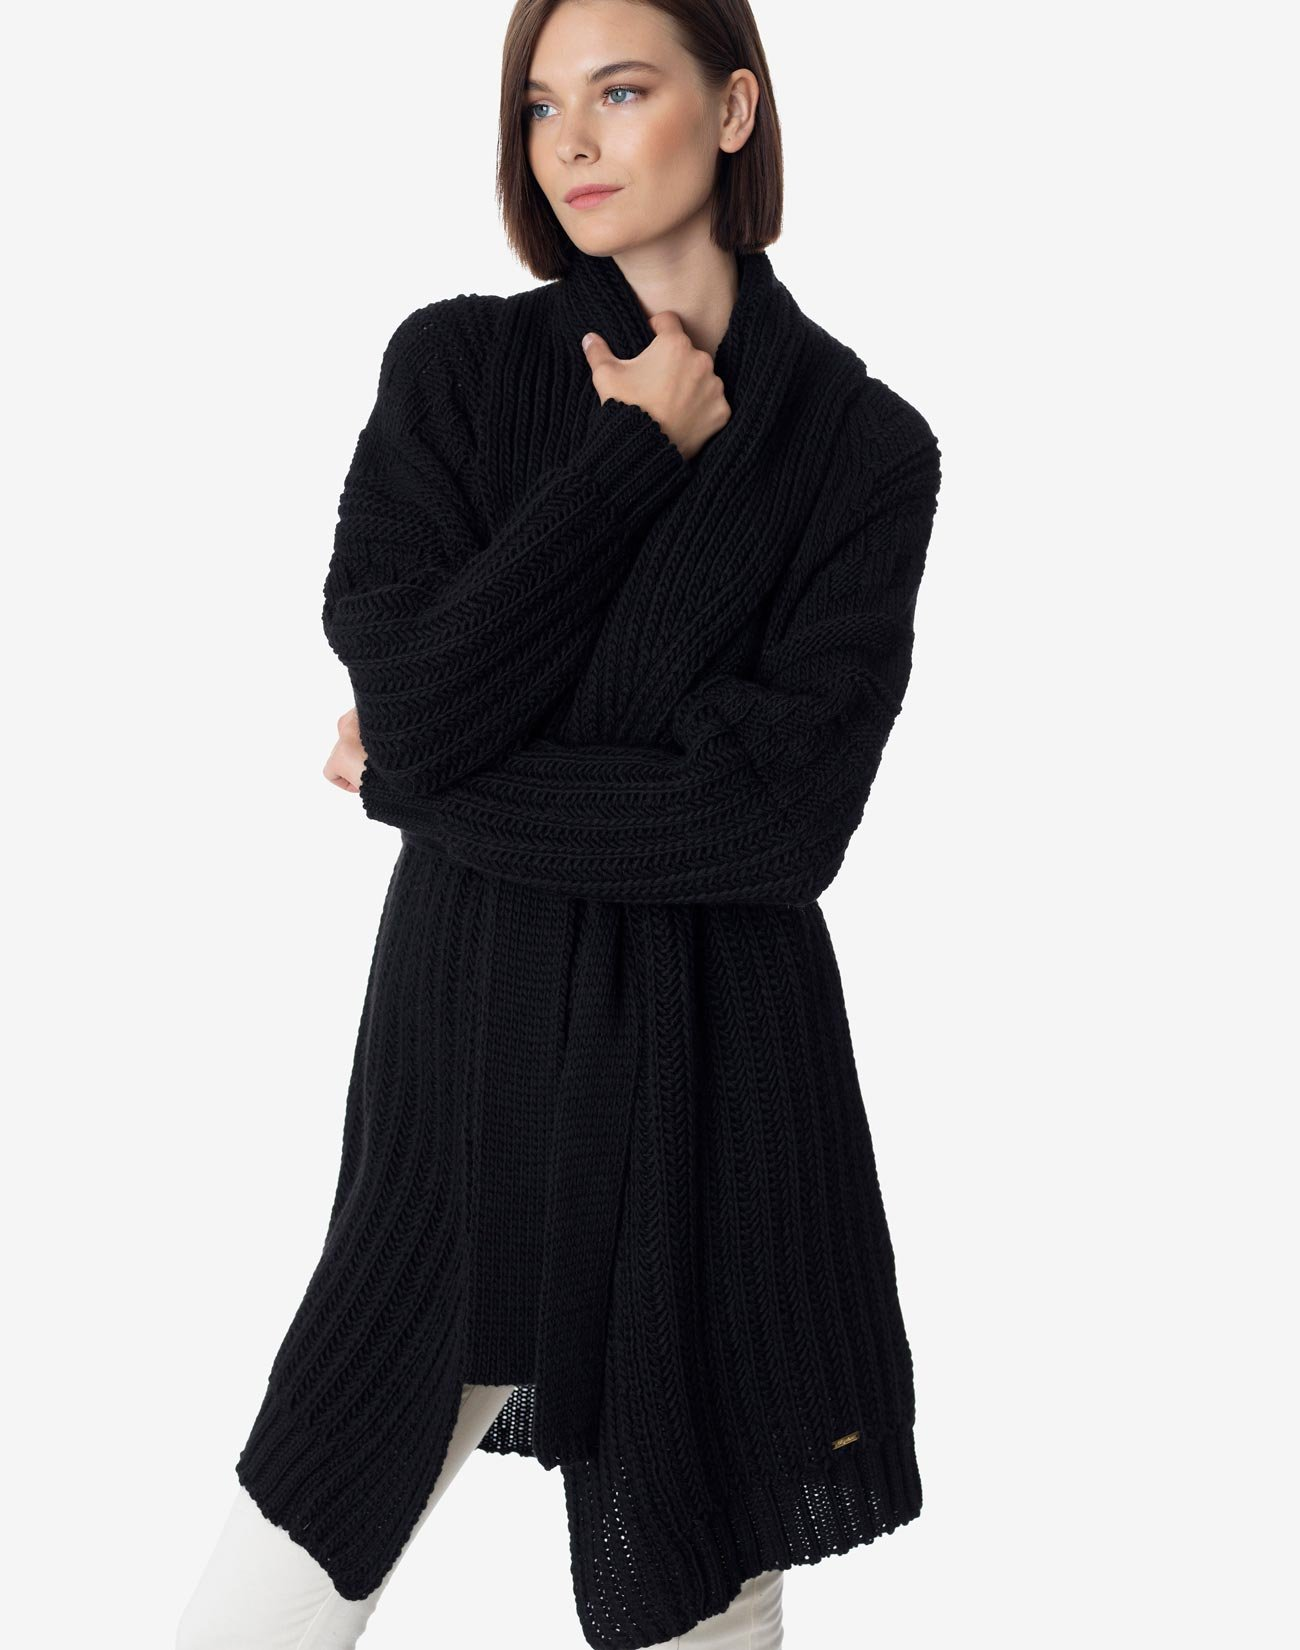 Long knit cardigan with belt